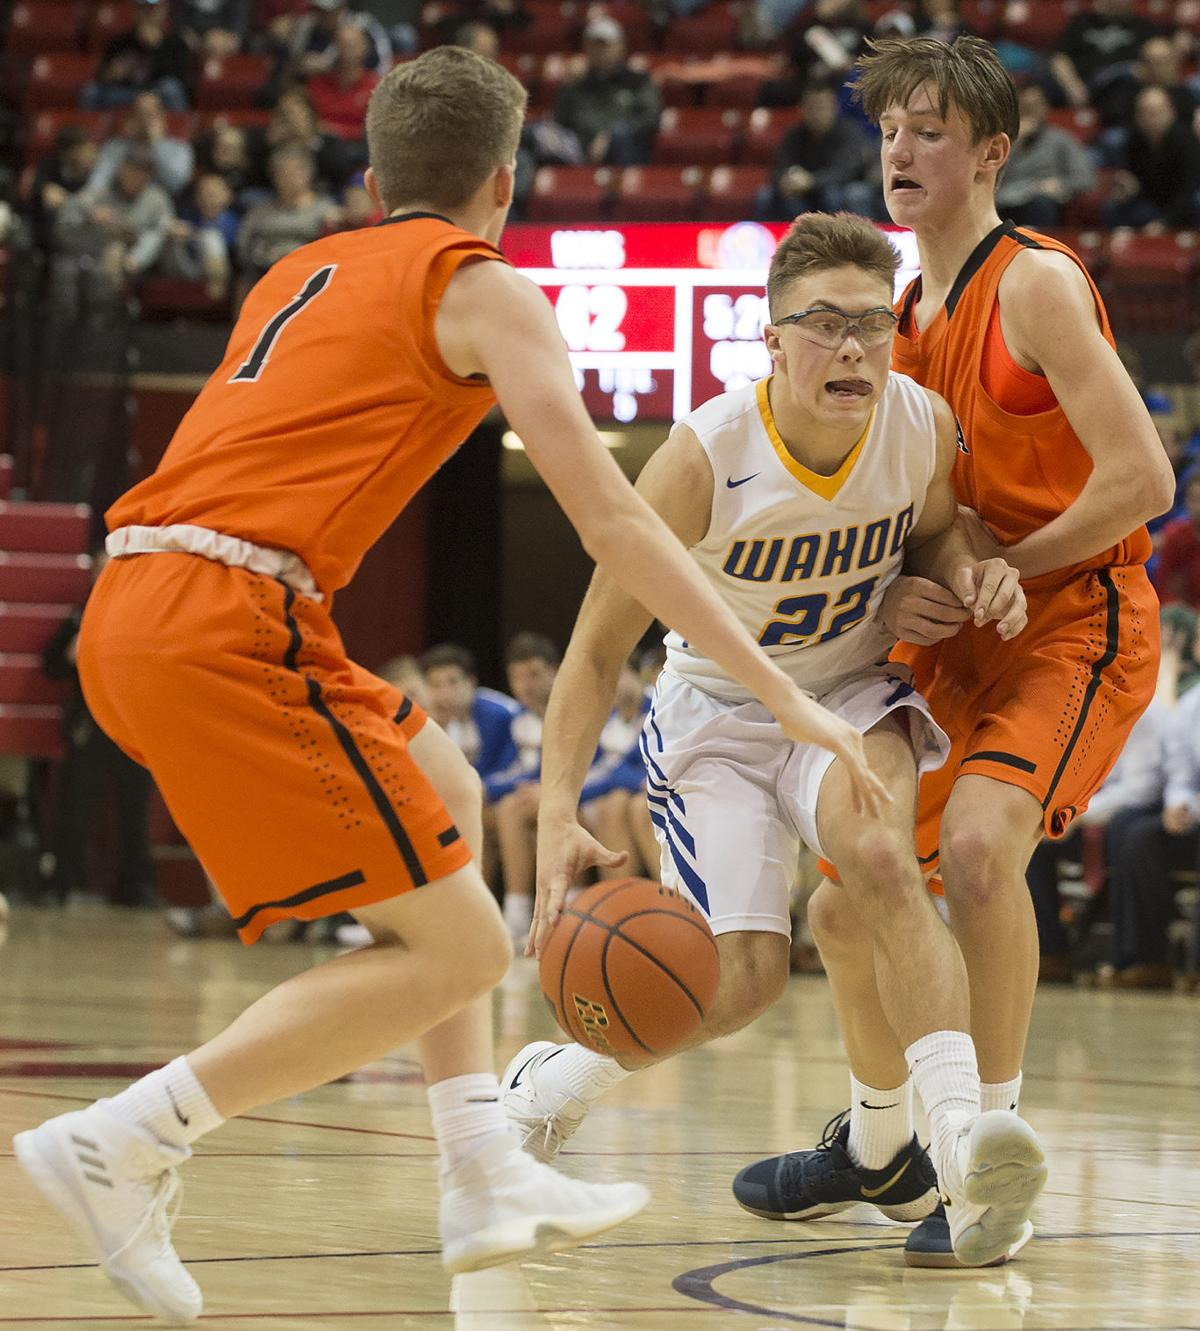 Boys state basketball, C1 first round - Wahoo vs. Ogallala, 3.8.2018